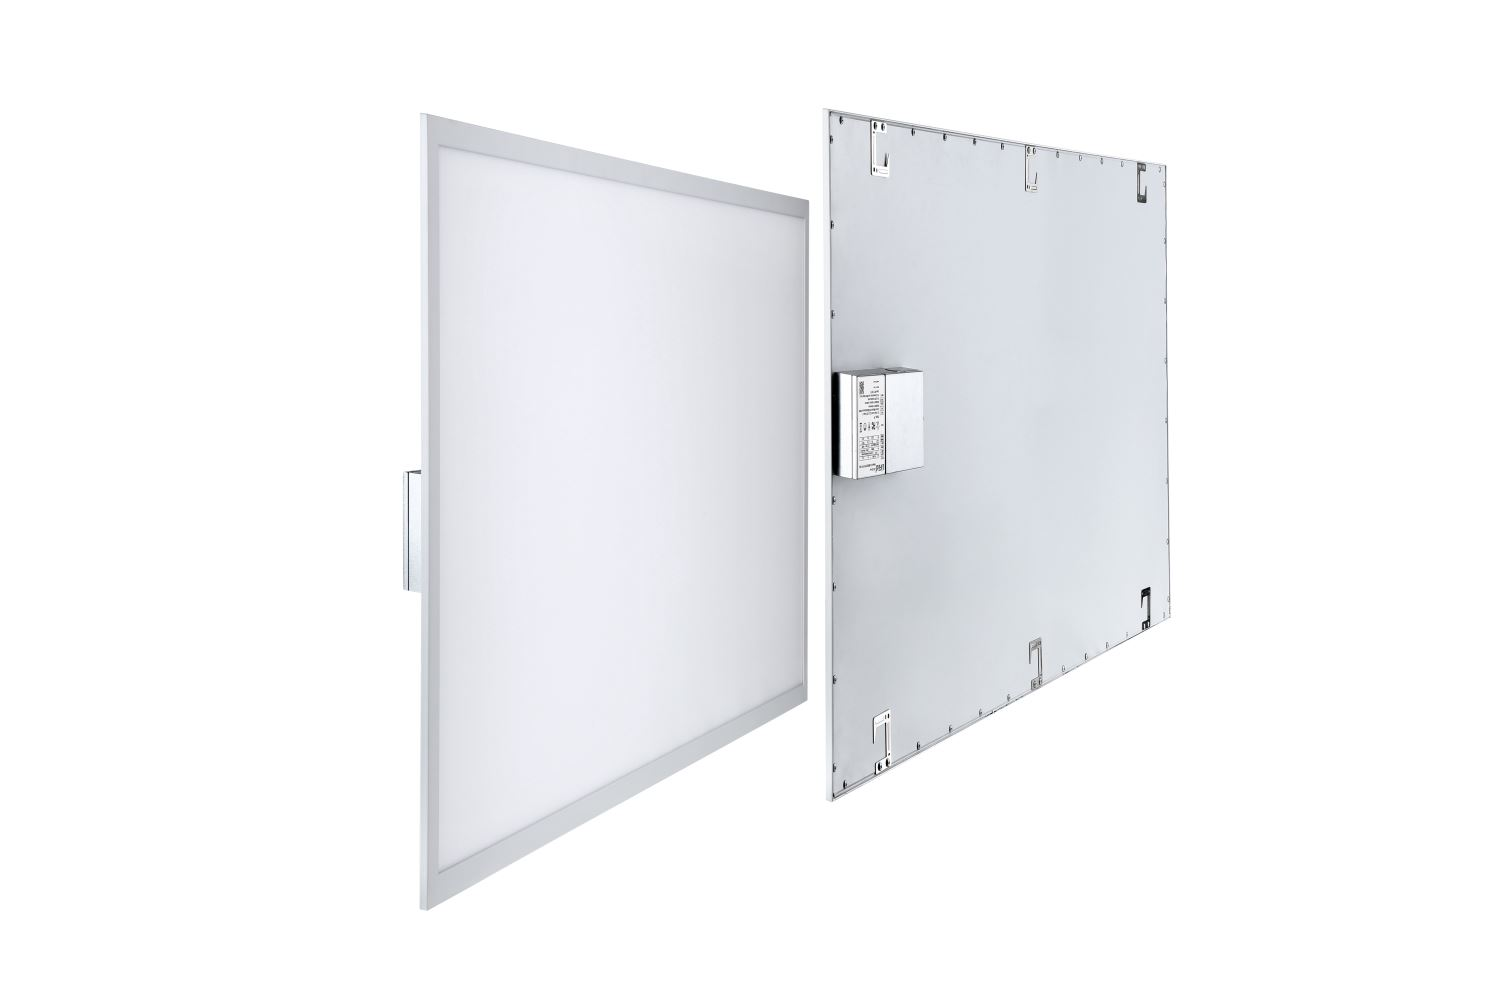 LED panel light 4x2 60x120 600x1200 UL FCC led flat panel lamp ip44 4000K-6000K dimmable